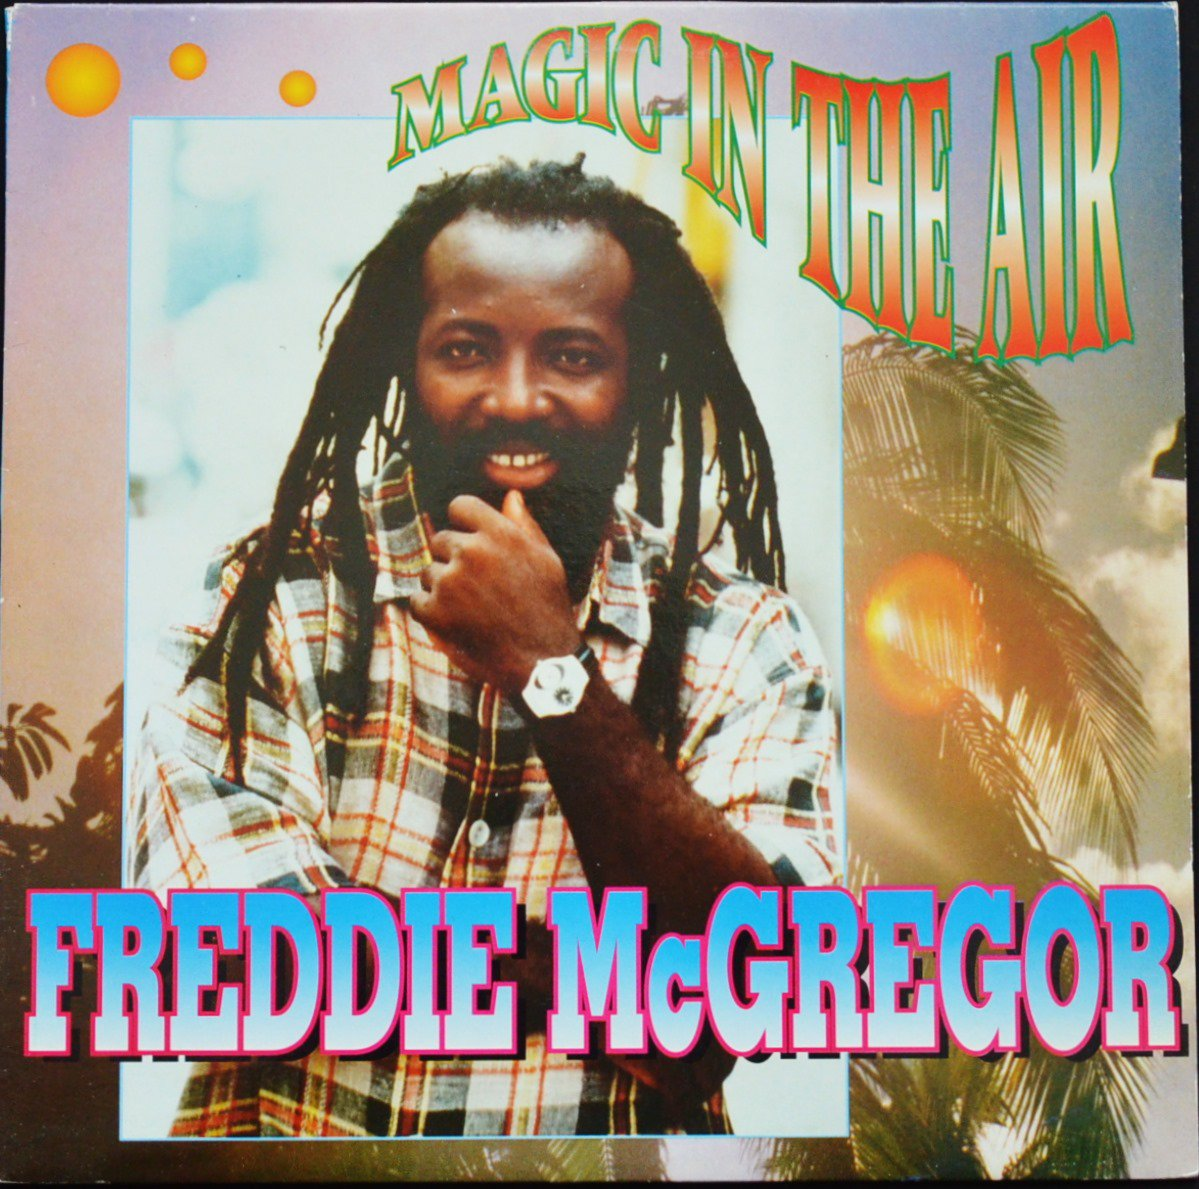 FREDDIE MCGREGOR / MAGIC IN THE AIR (1LP)